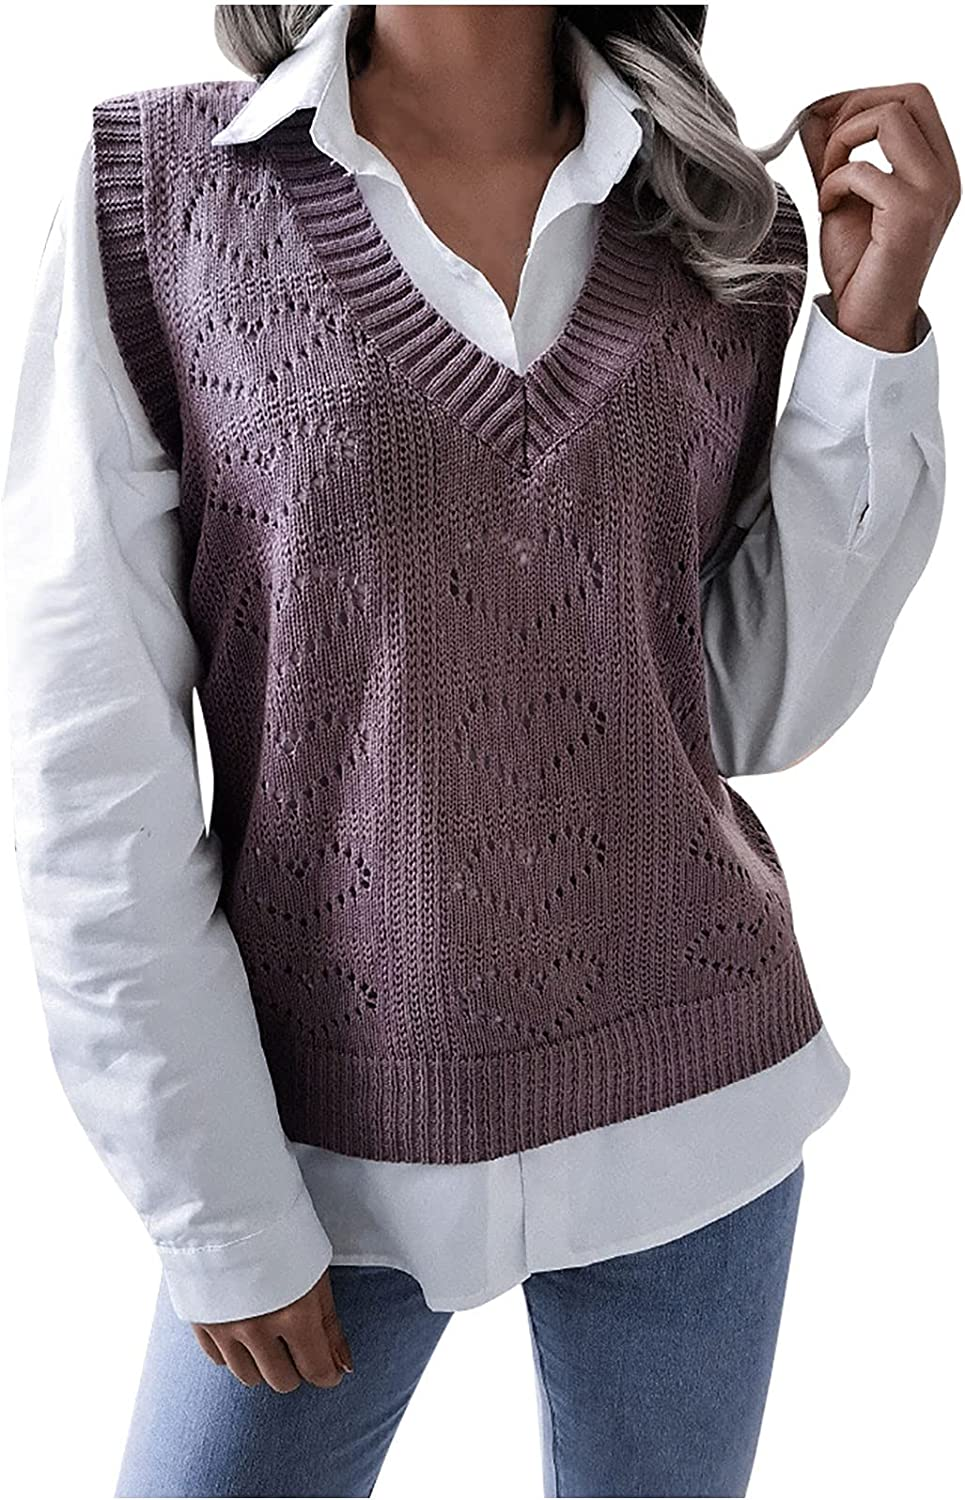 Womens Heart Shape Hollow Knitted Sweater Pullover Vest Casual Loose V Neck Solid Color Lightweight Blouse Tee Tops